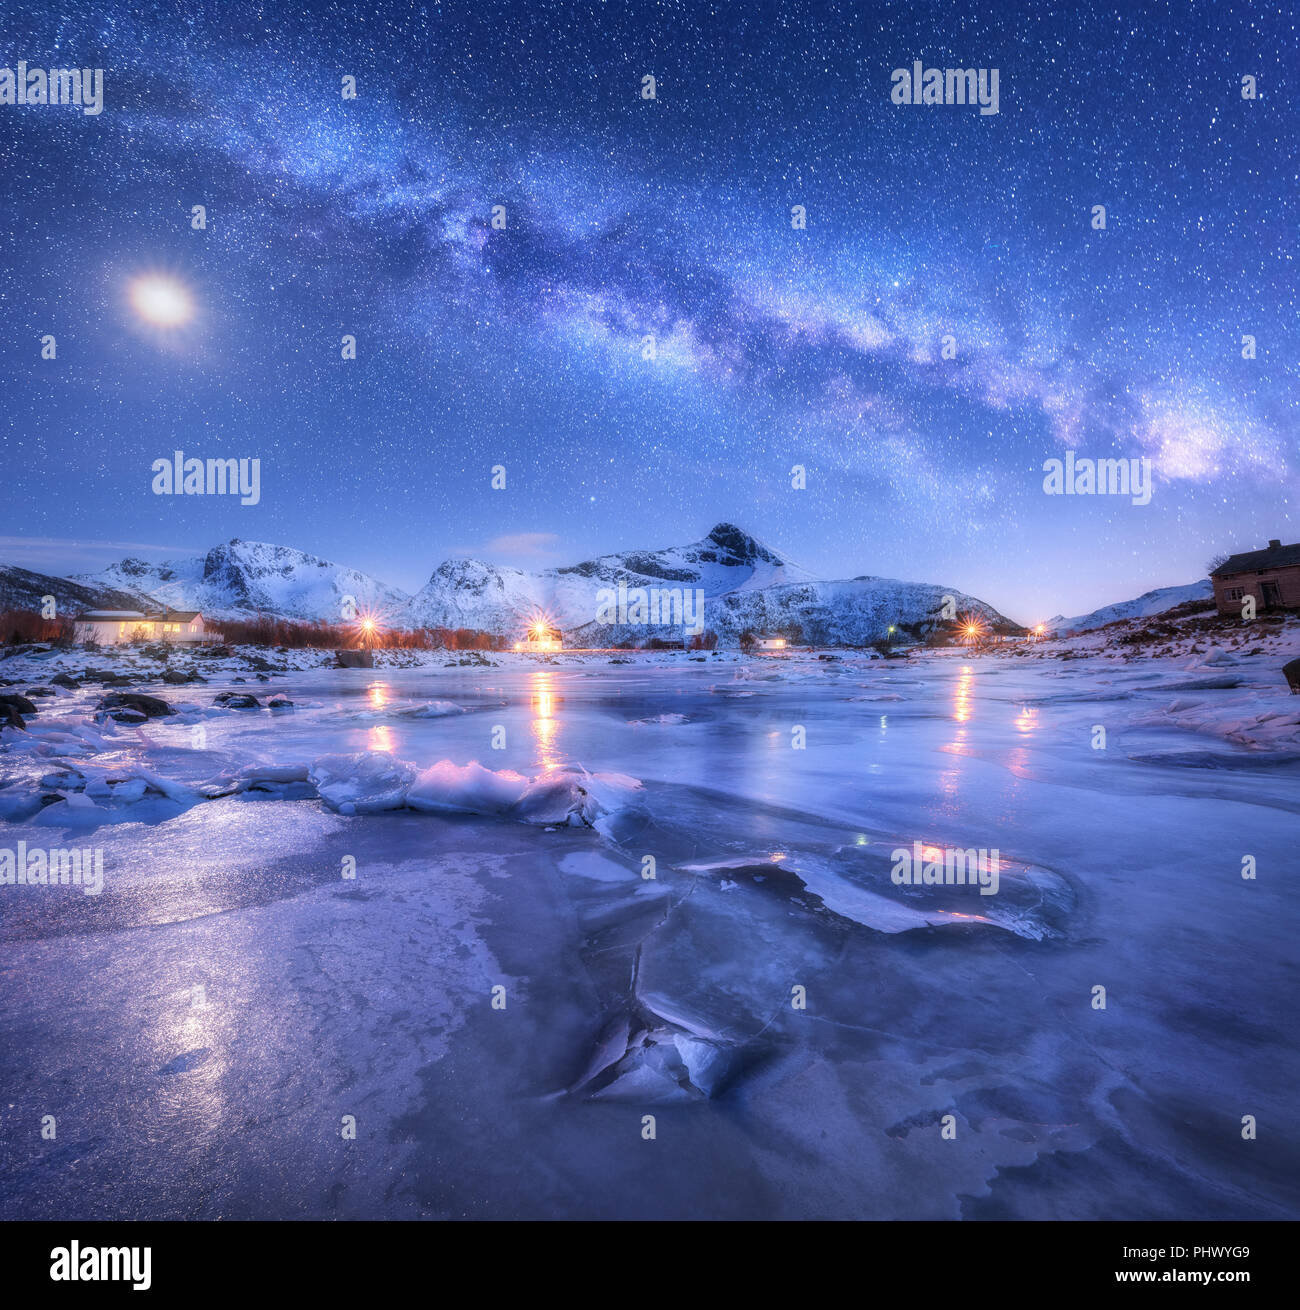 Milky Way above frozen sea coast, snow covered mountains and starry sky with moon in winter at night in Norway. Landscape with galaxy, ice, snowy rock - Stock Image